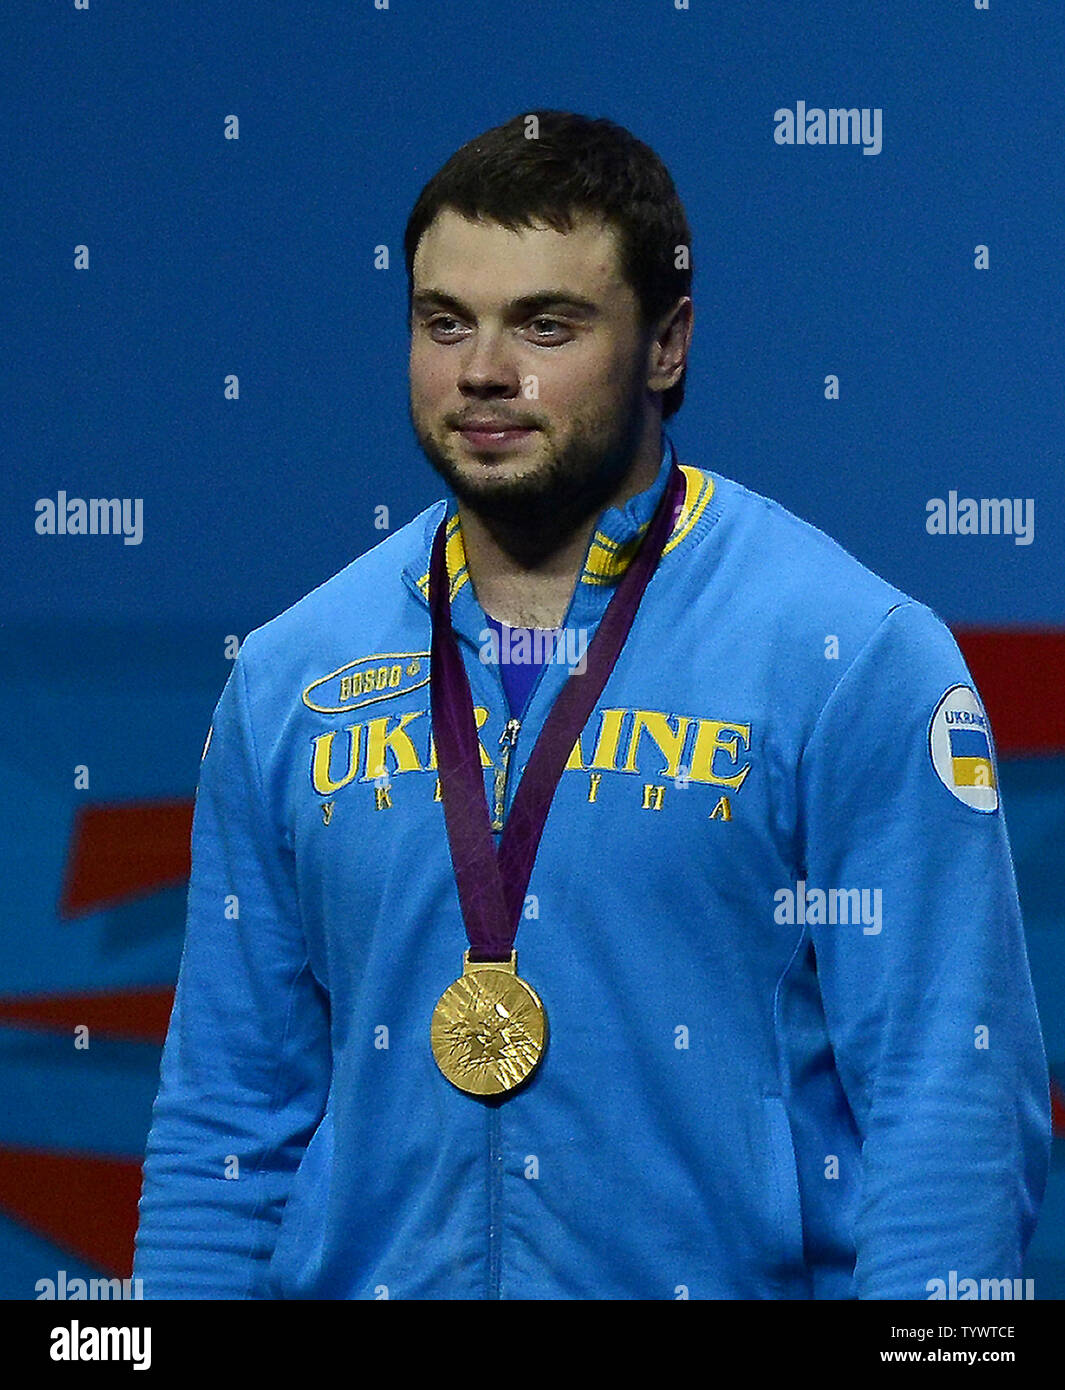 Oleksiy Torokhtiy of Ukraine wears the Gold Medal he earned in the Men's 105kg Weightlifting competition at the London 2012 Summer Olympics on August 5, 2012 in London.   UPI/Ron Sachs - Stock Image